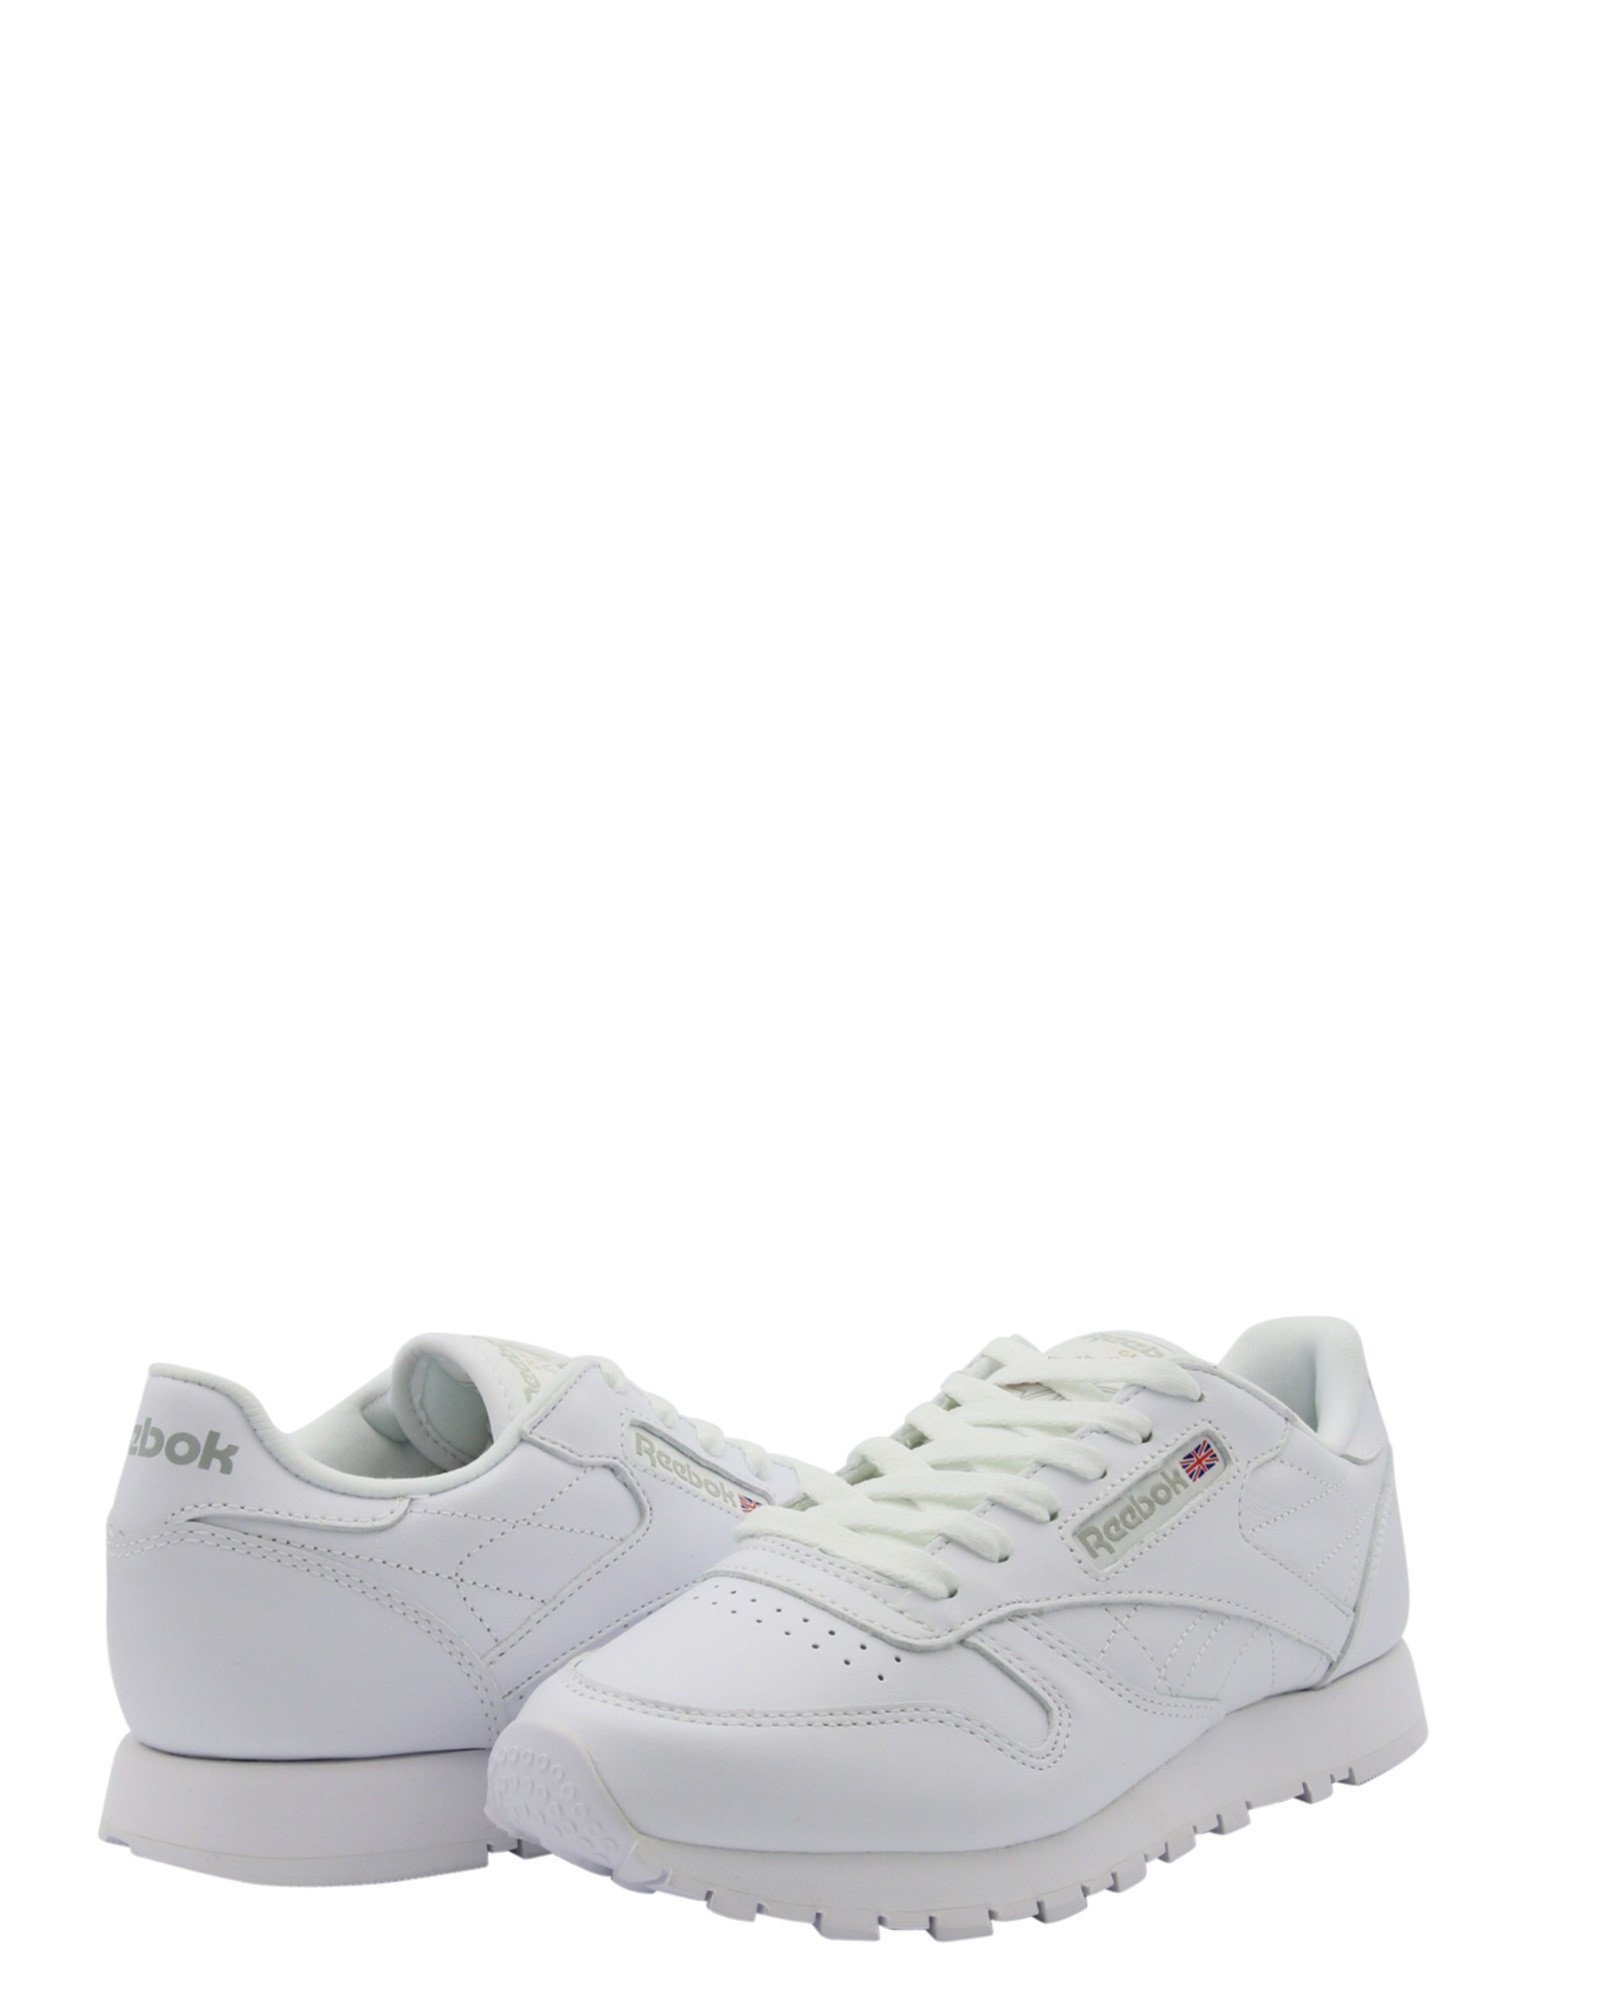 401e9e11a These classic leather Reebok are great for school or casual events.  Complete you child's outfit